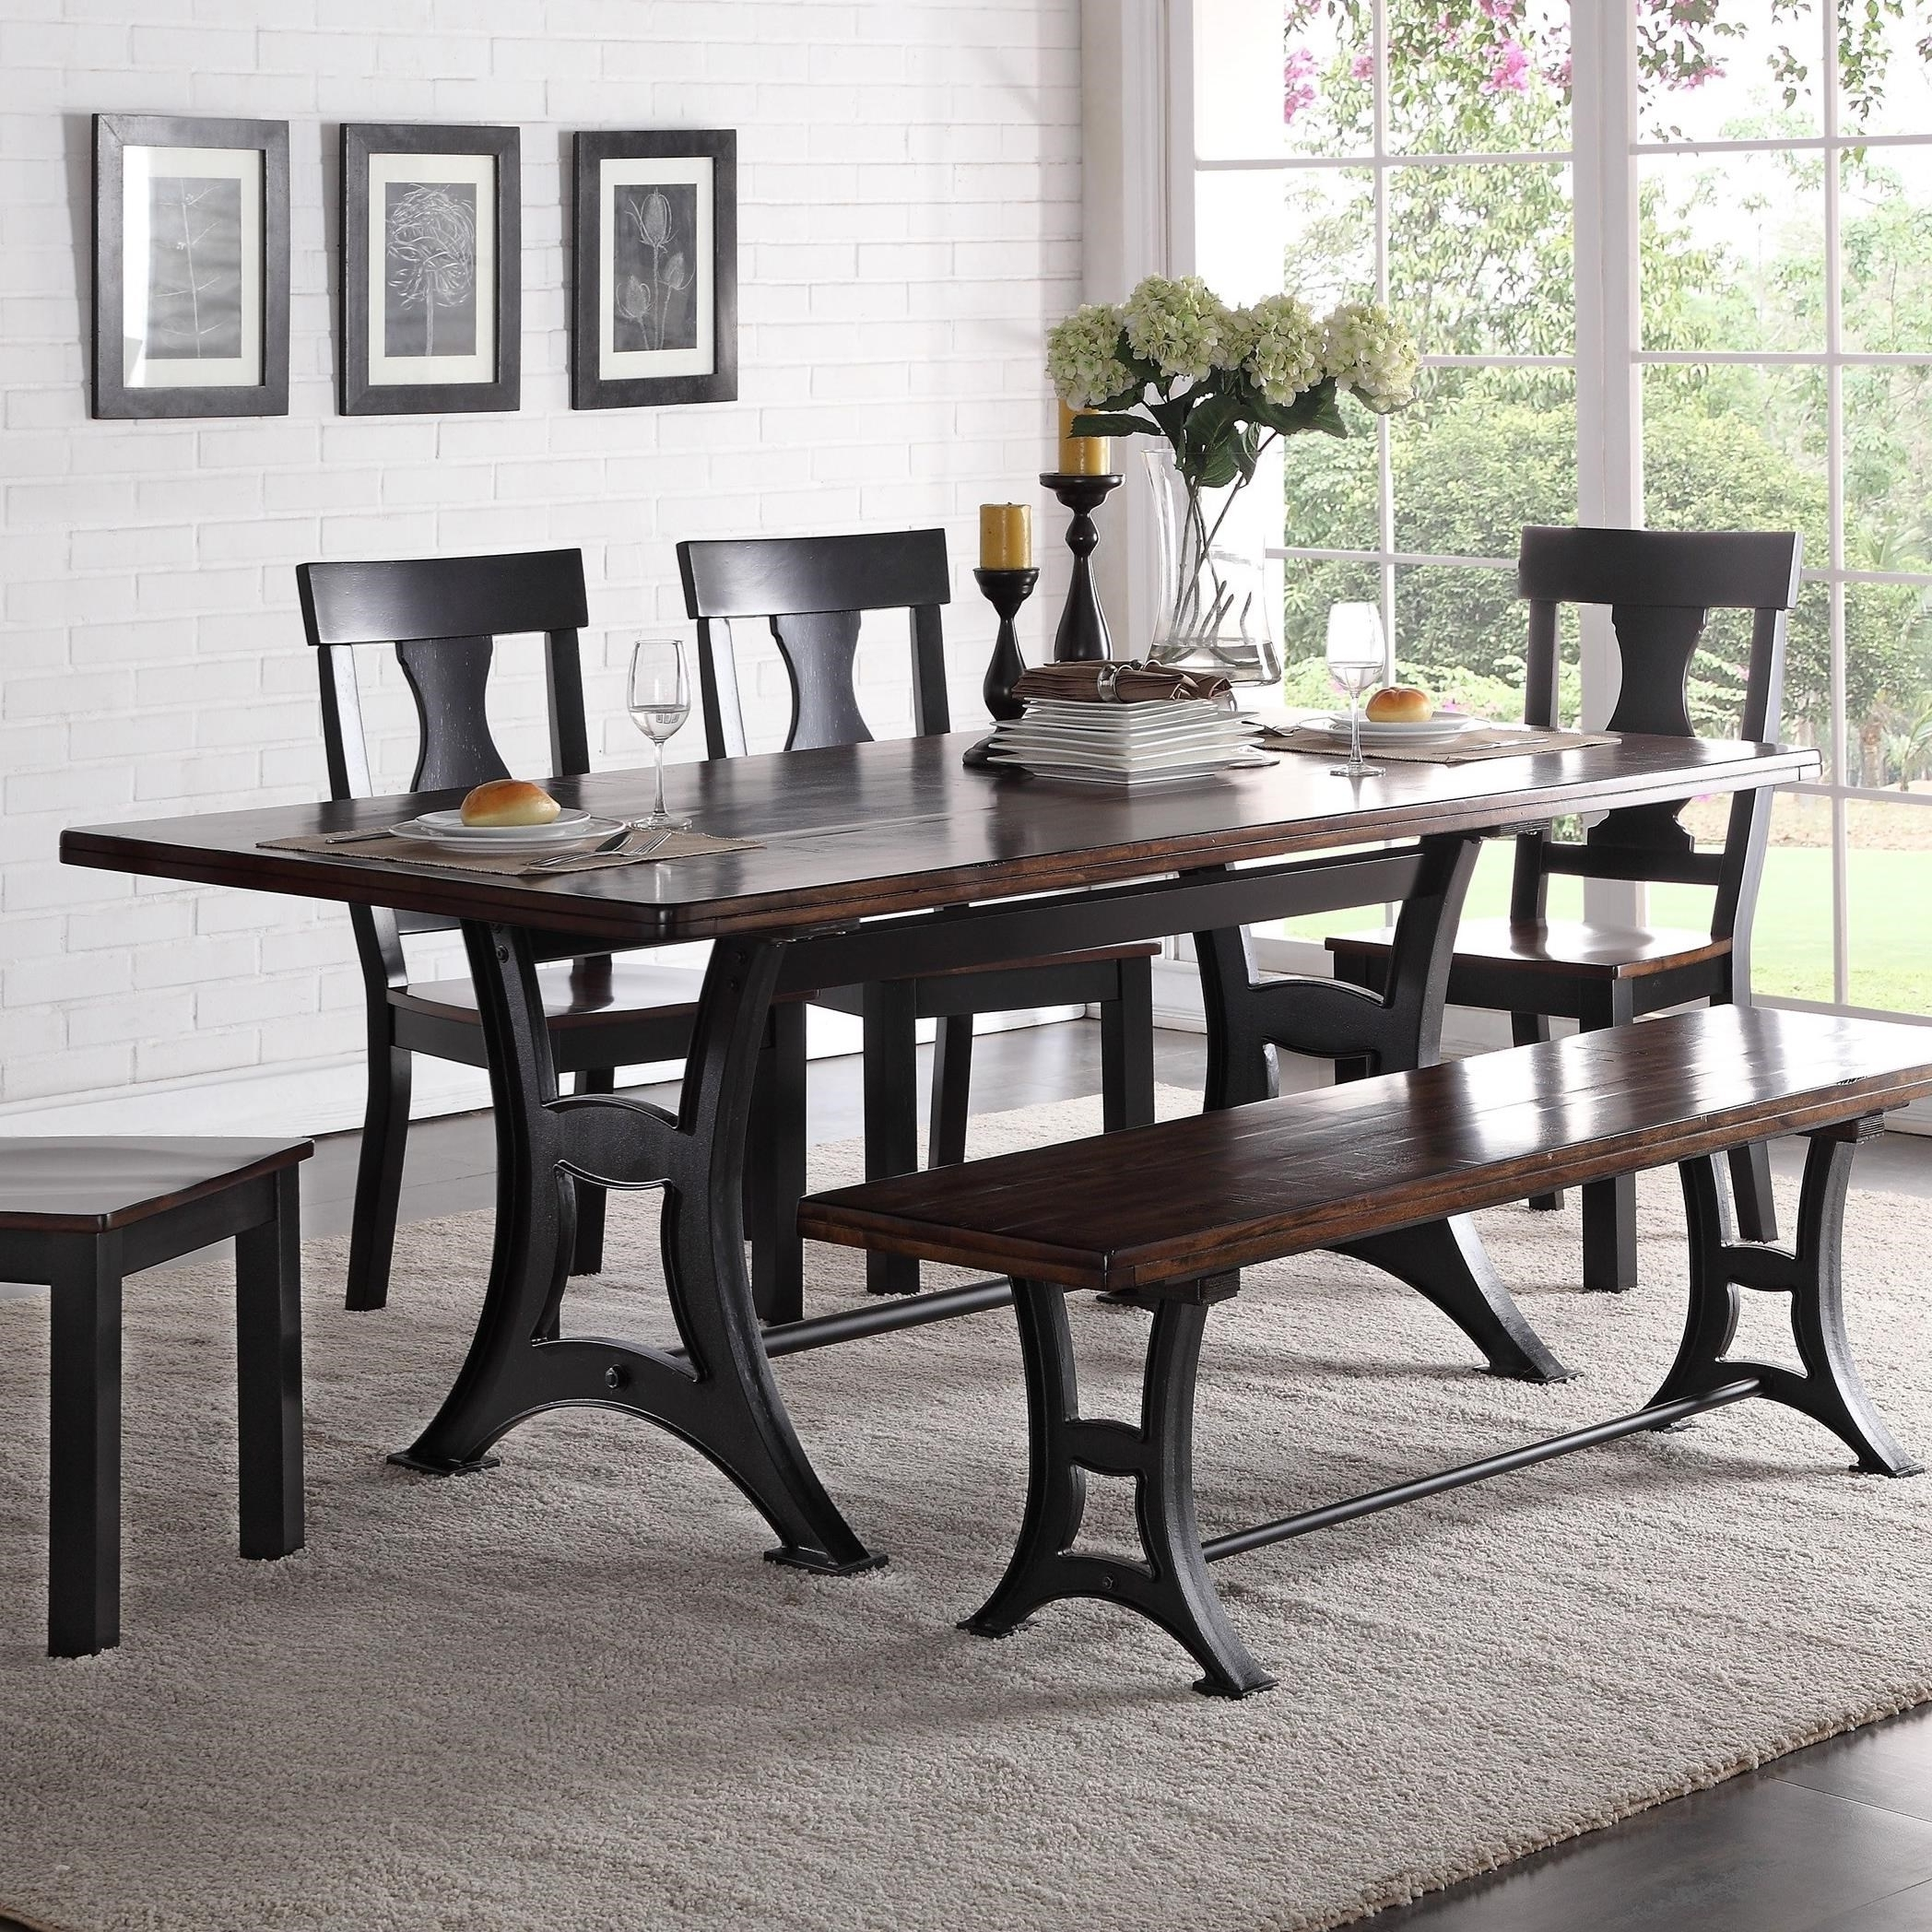 Phoenix Dining Tables Regarding Well Known Crown Mark Astor Industrial Dining Table With Trestle Base And (View 18 of 25)